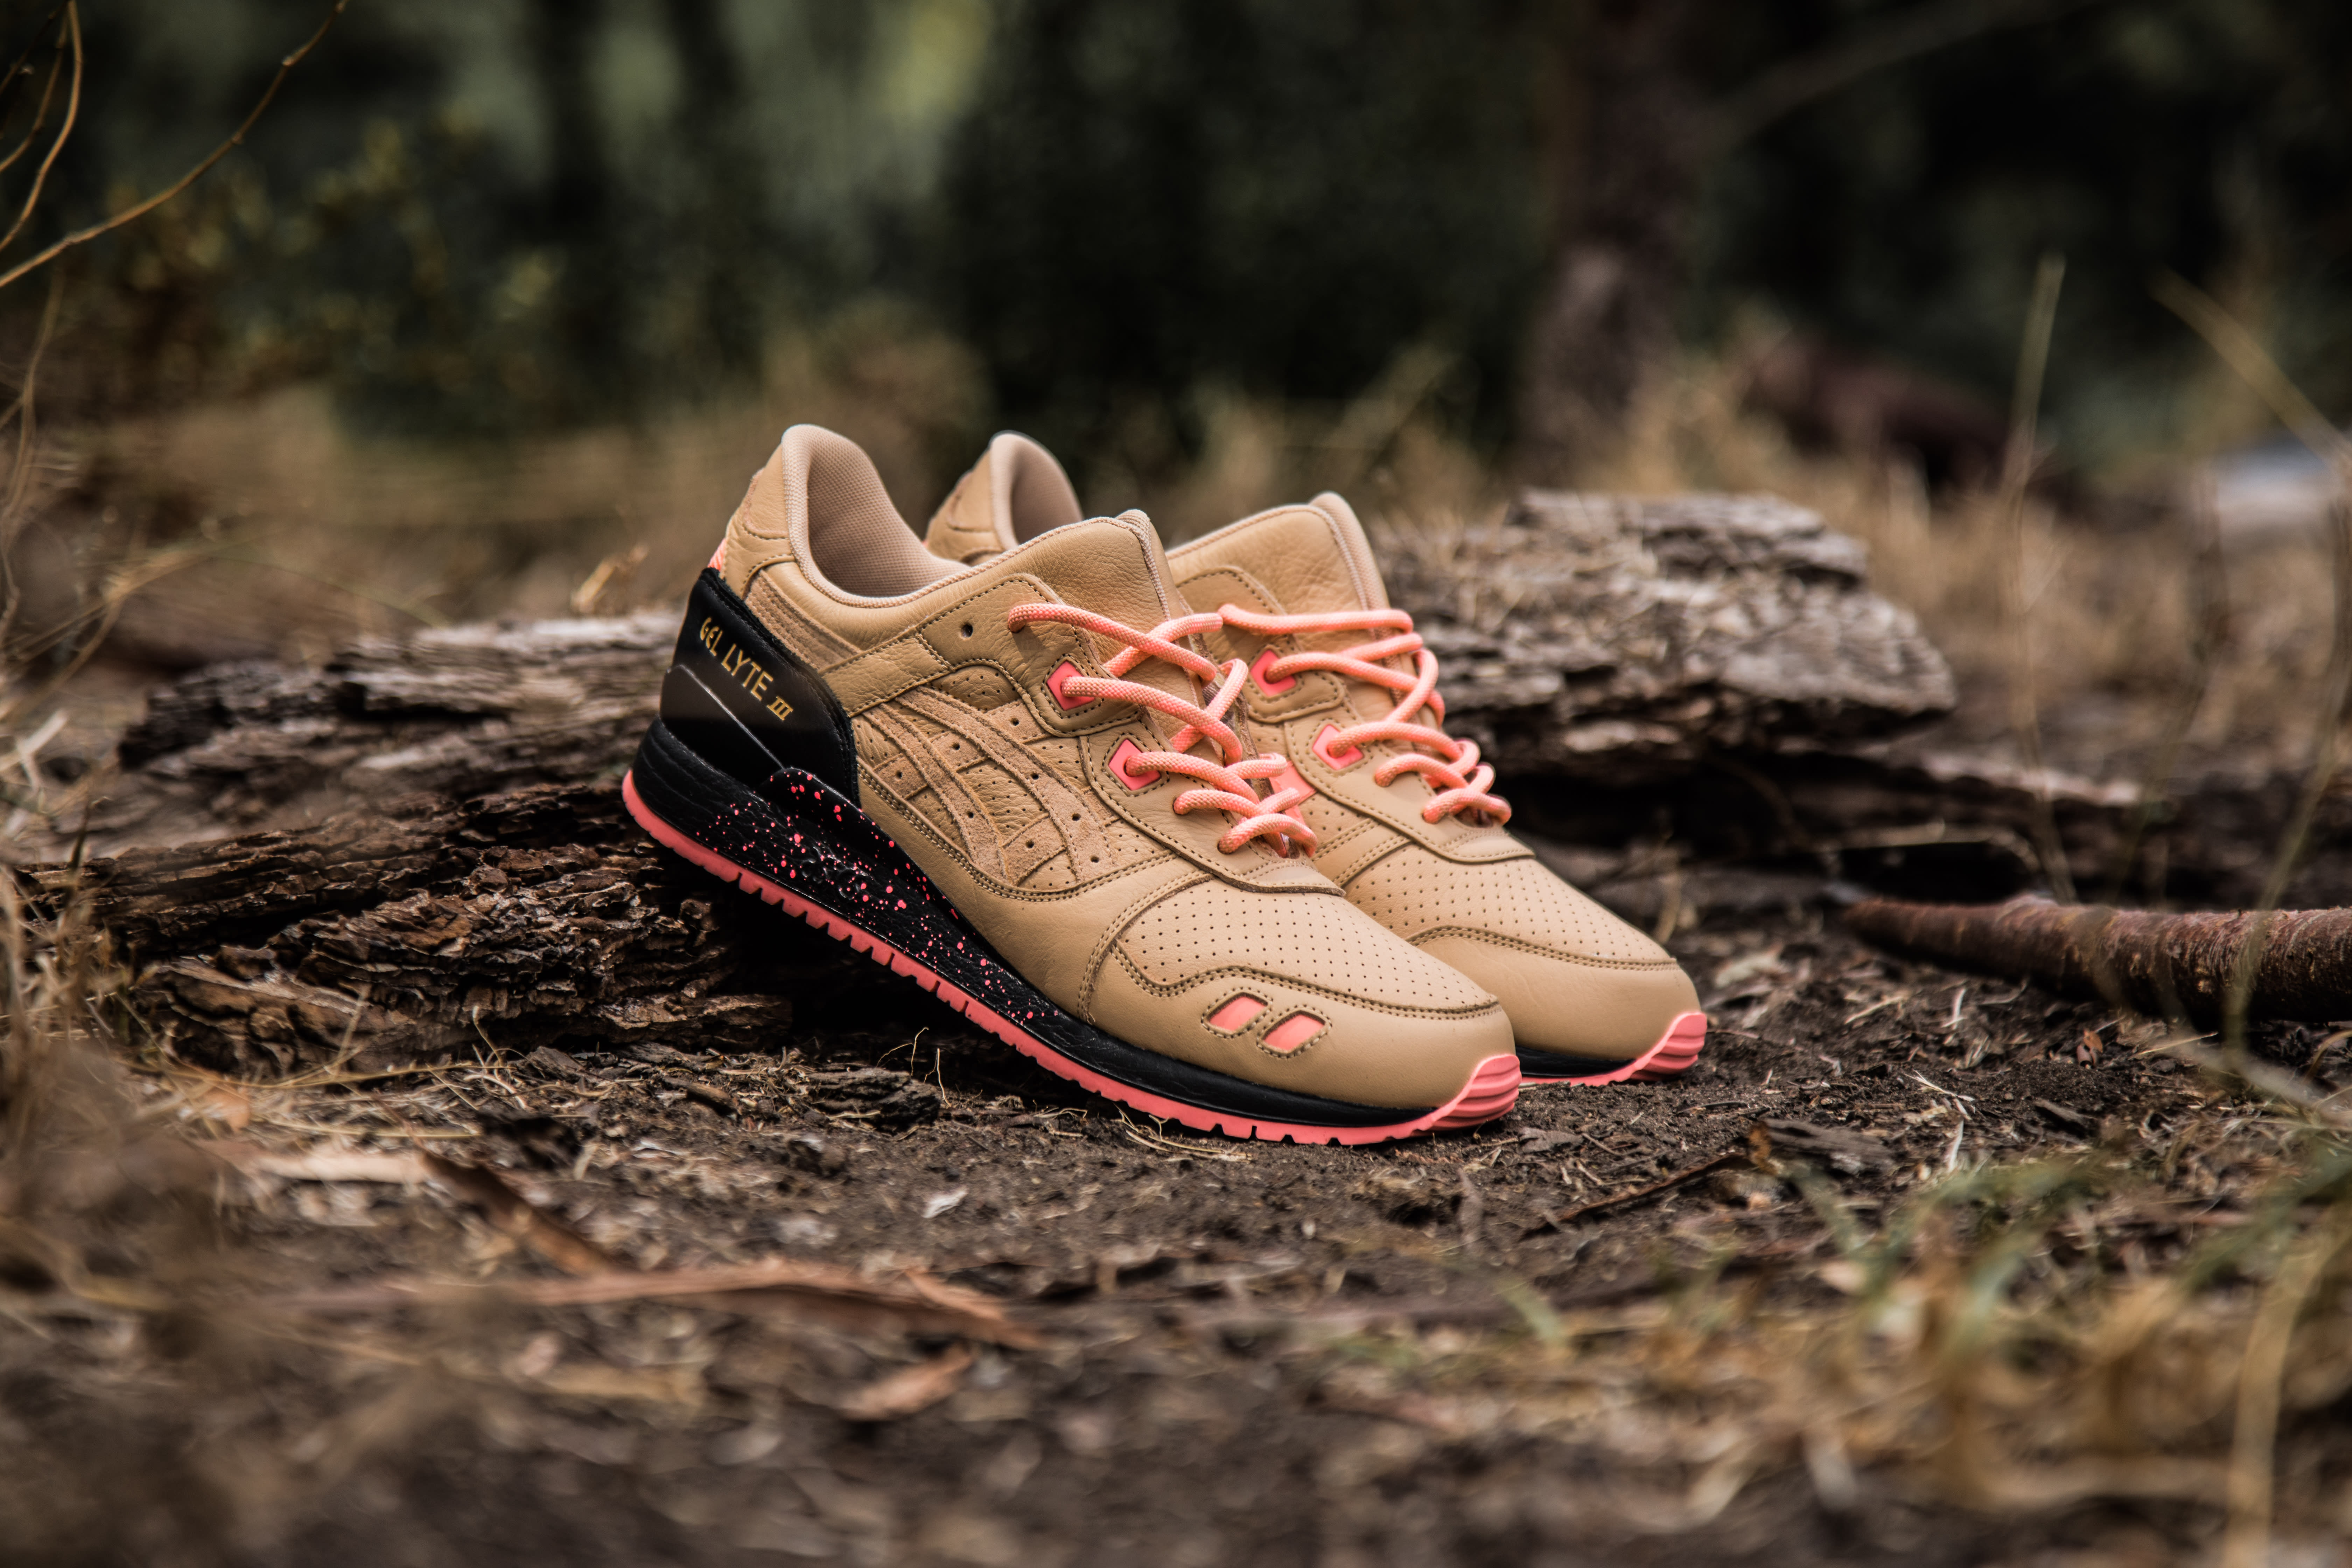 new arrivals 5c2eb 12496 Climb the Food Chain with the ASICSTIGER X Sneaker Freaker ...